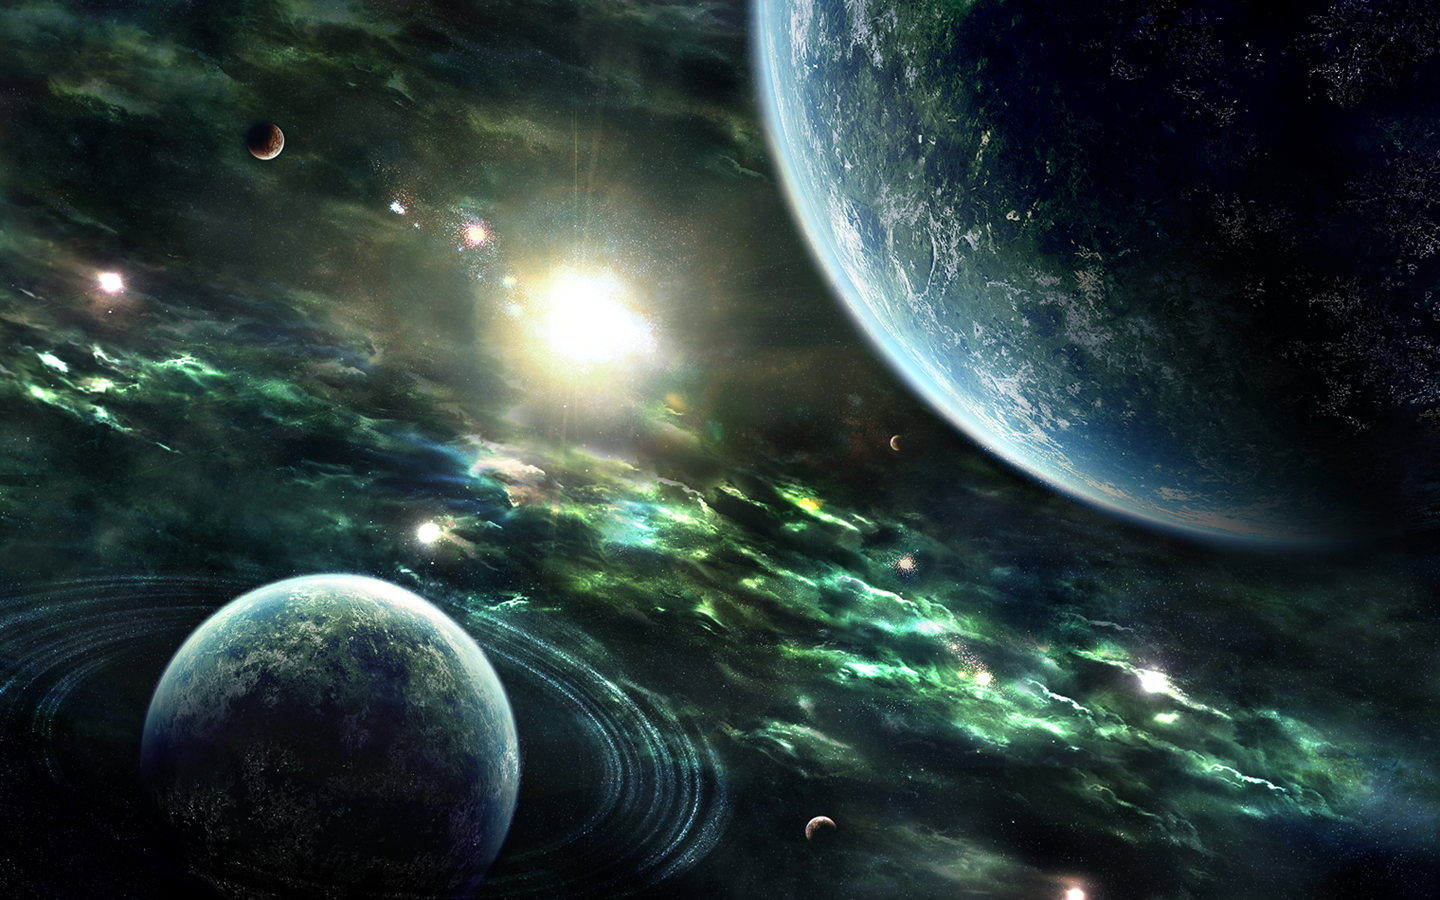 Space/Fantasy Wallpaper Set 4 « Awesome Wallpapers